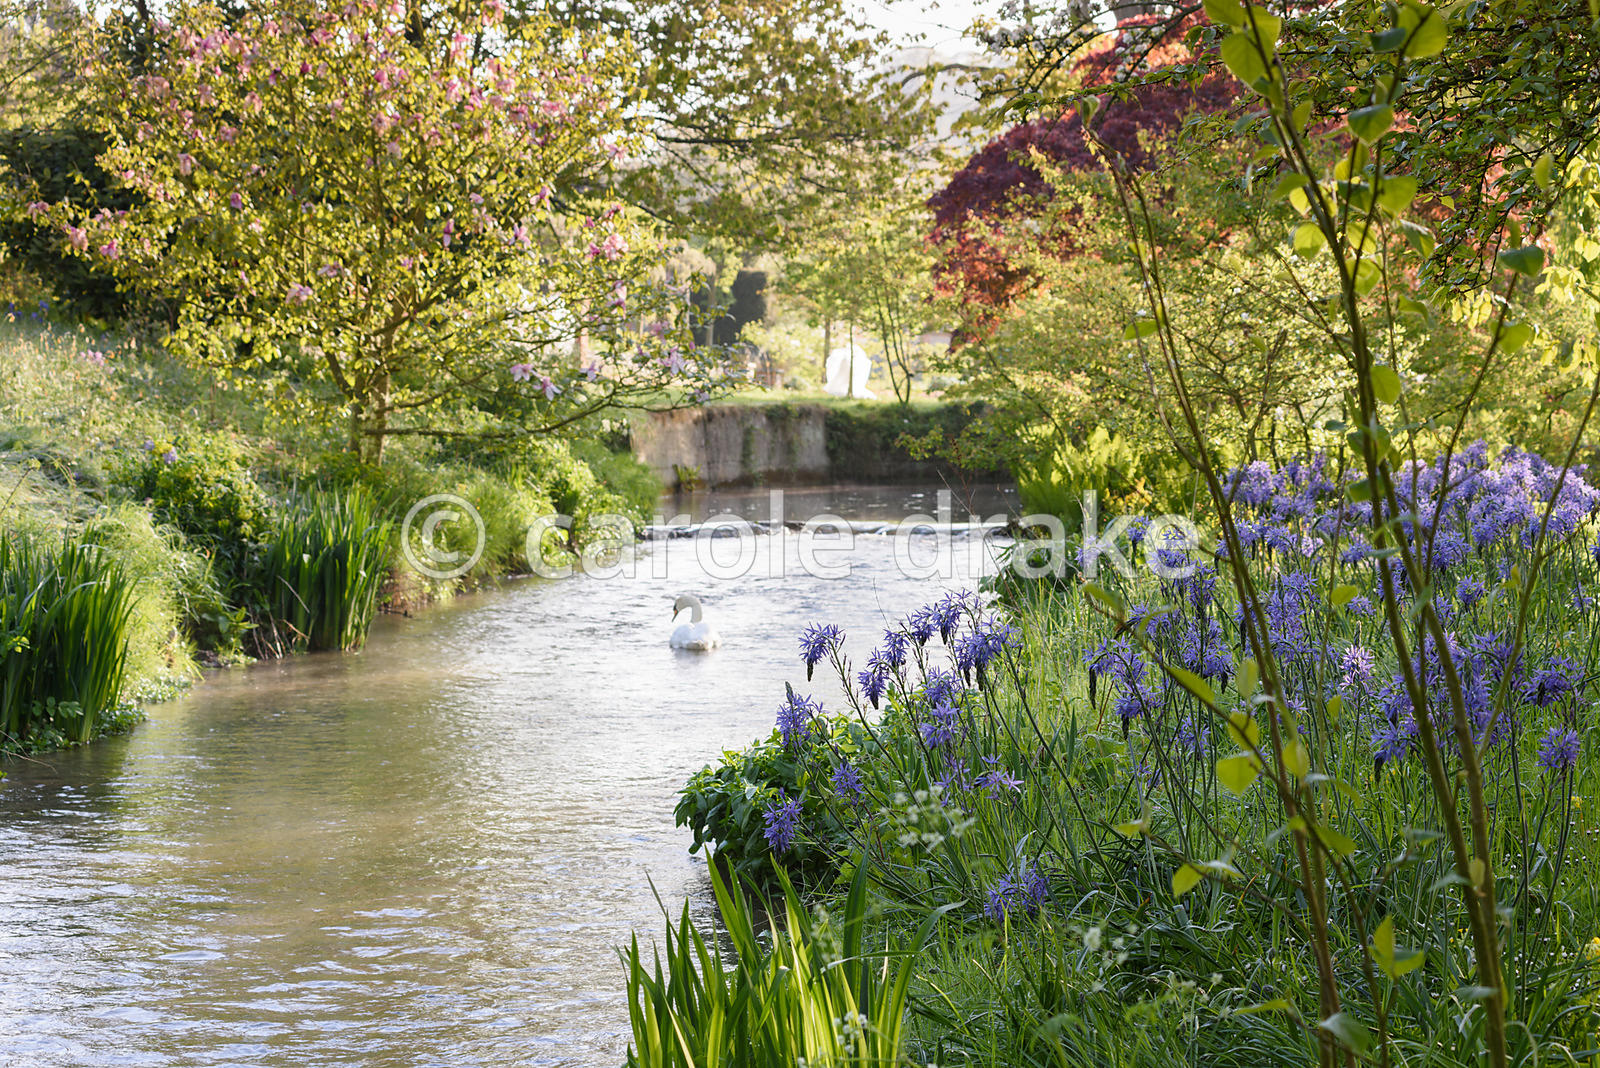 Camassias in long grass beside a tributary of the River Avon at Heale House, Middle Woodford, Wiltshire